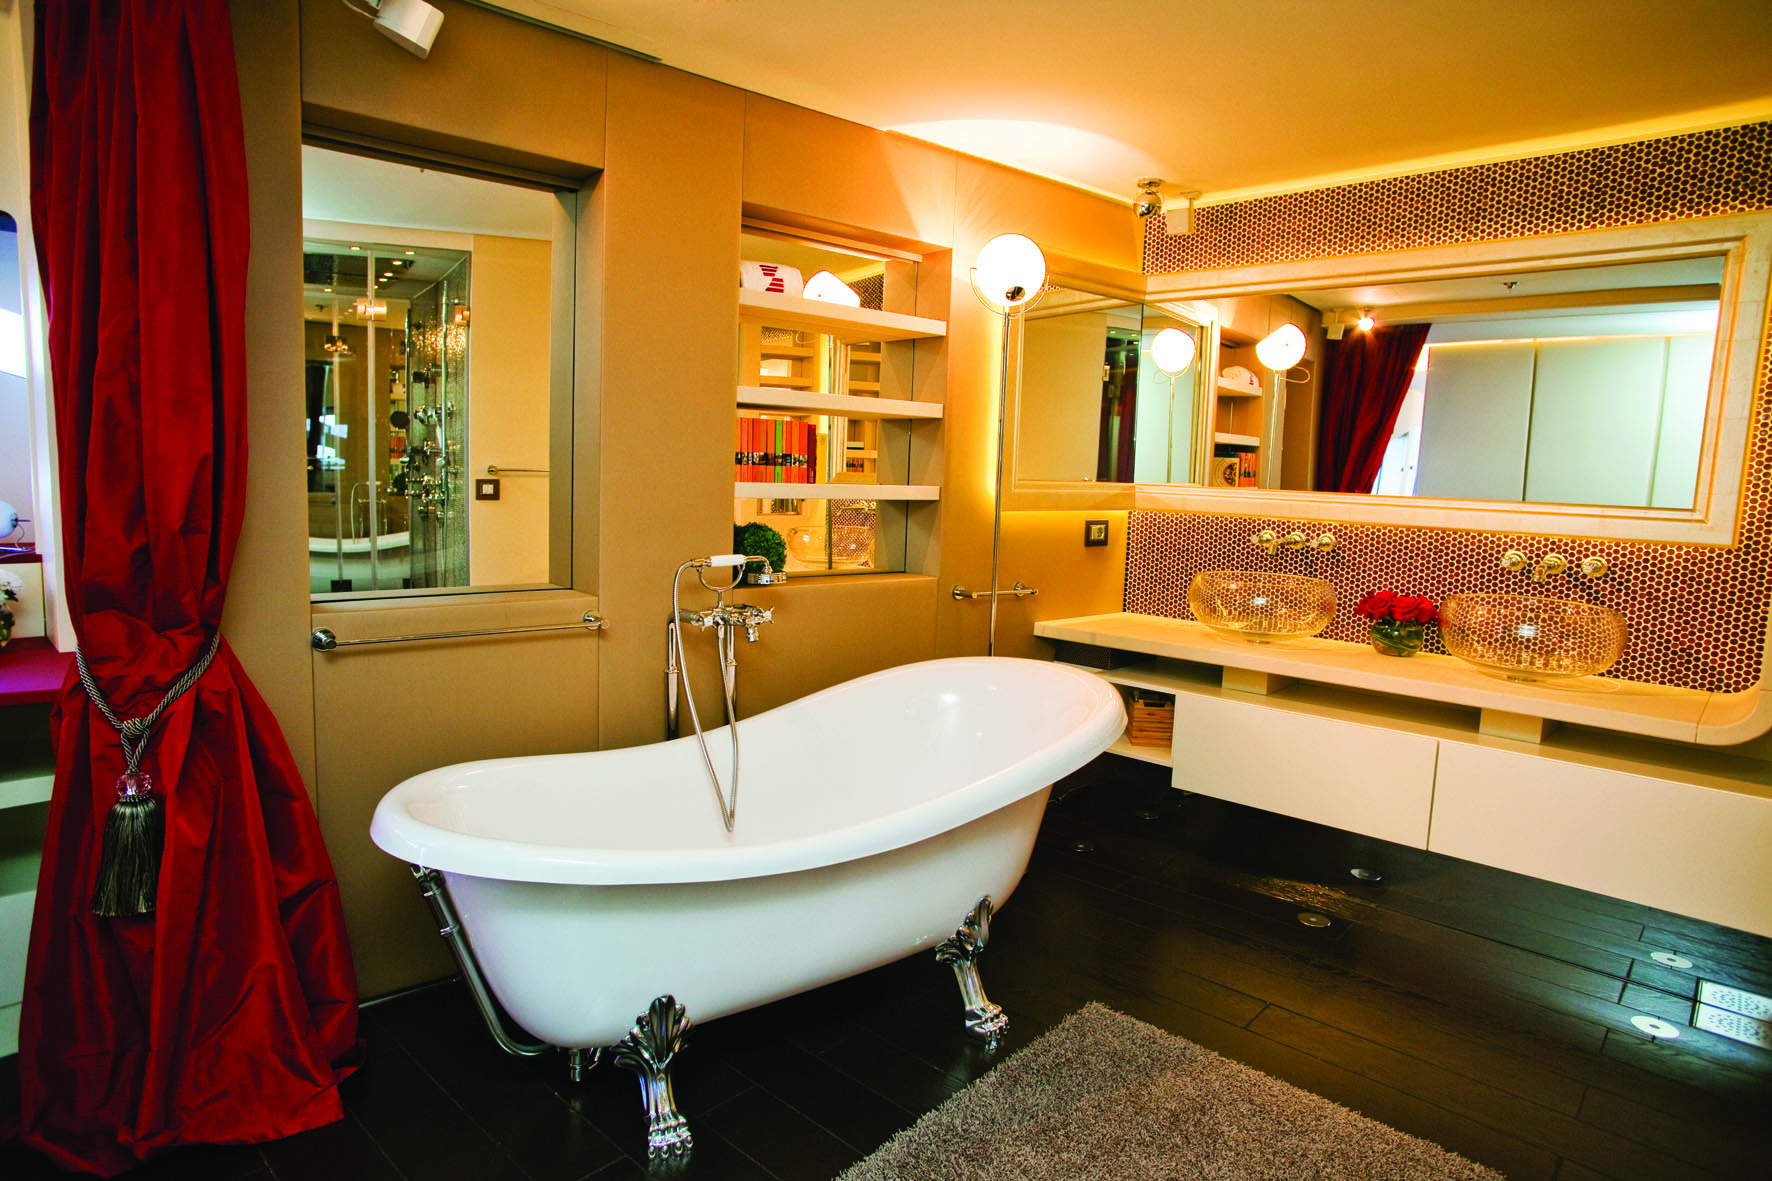 Innenarchitektur Badezimmer Home Ideas Modern Home Design Bathroom Interiors Designs